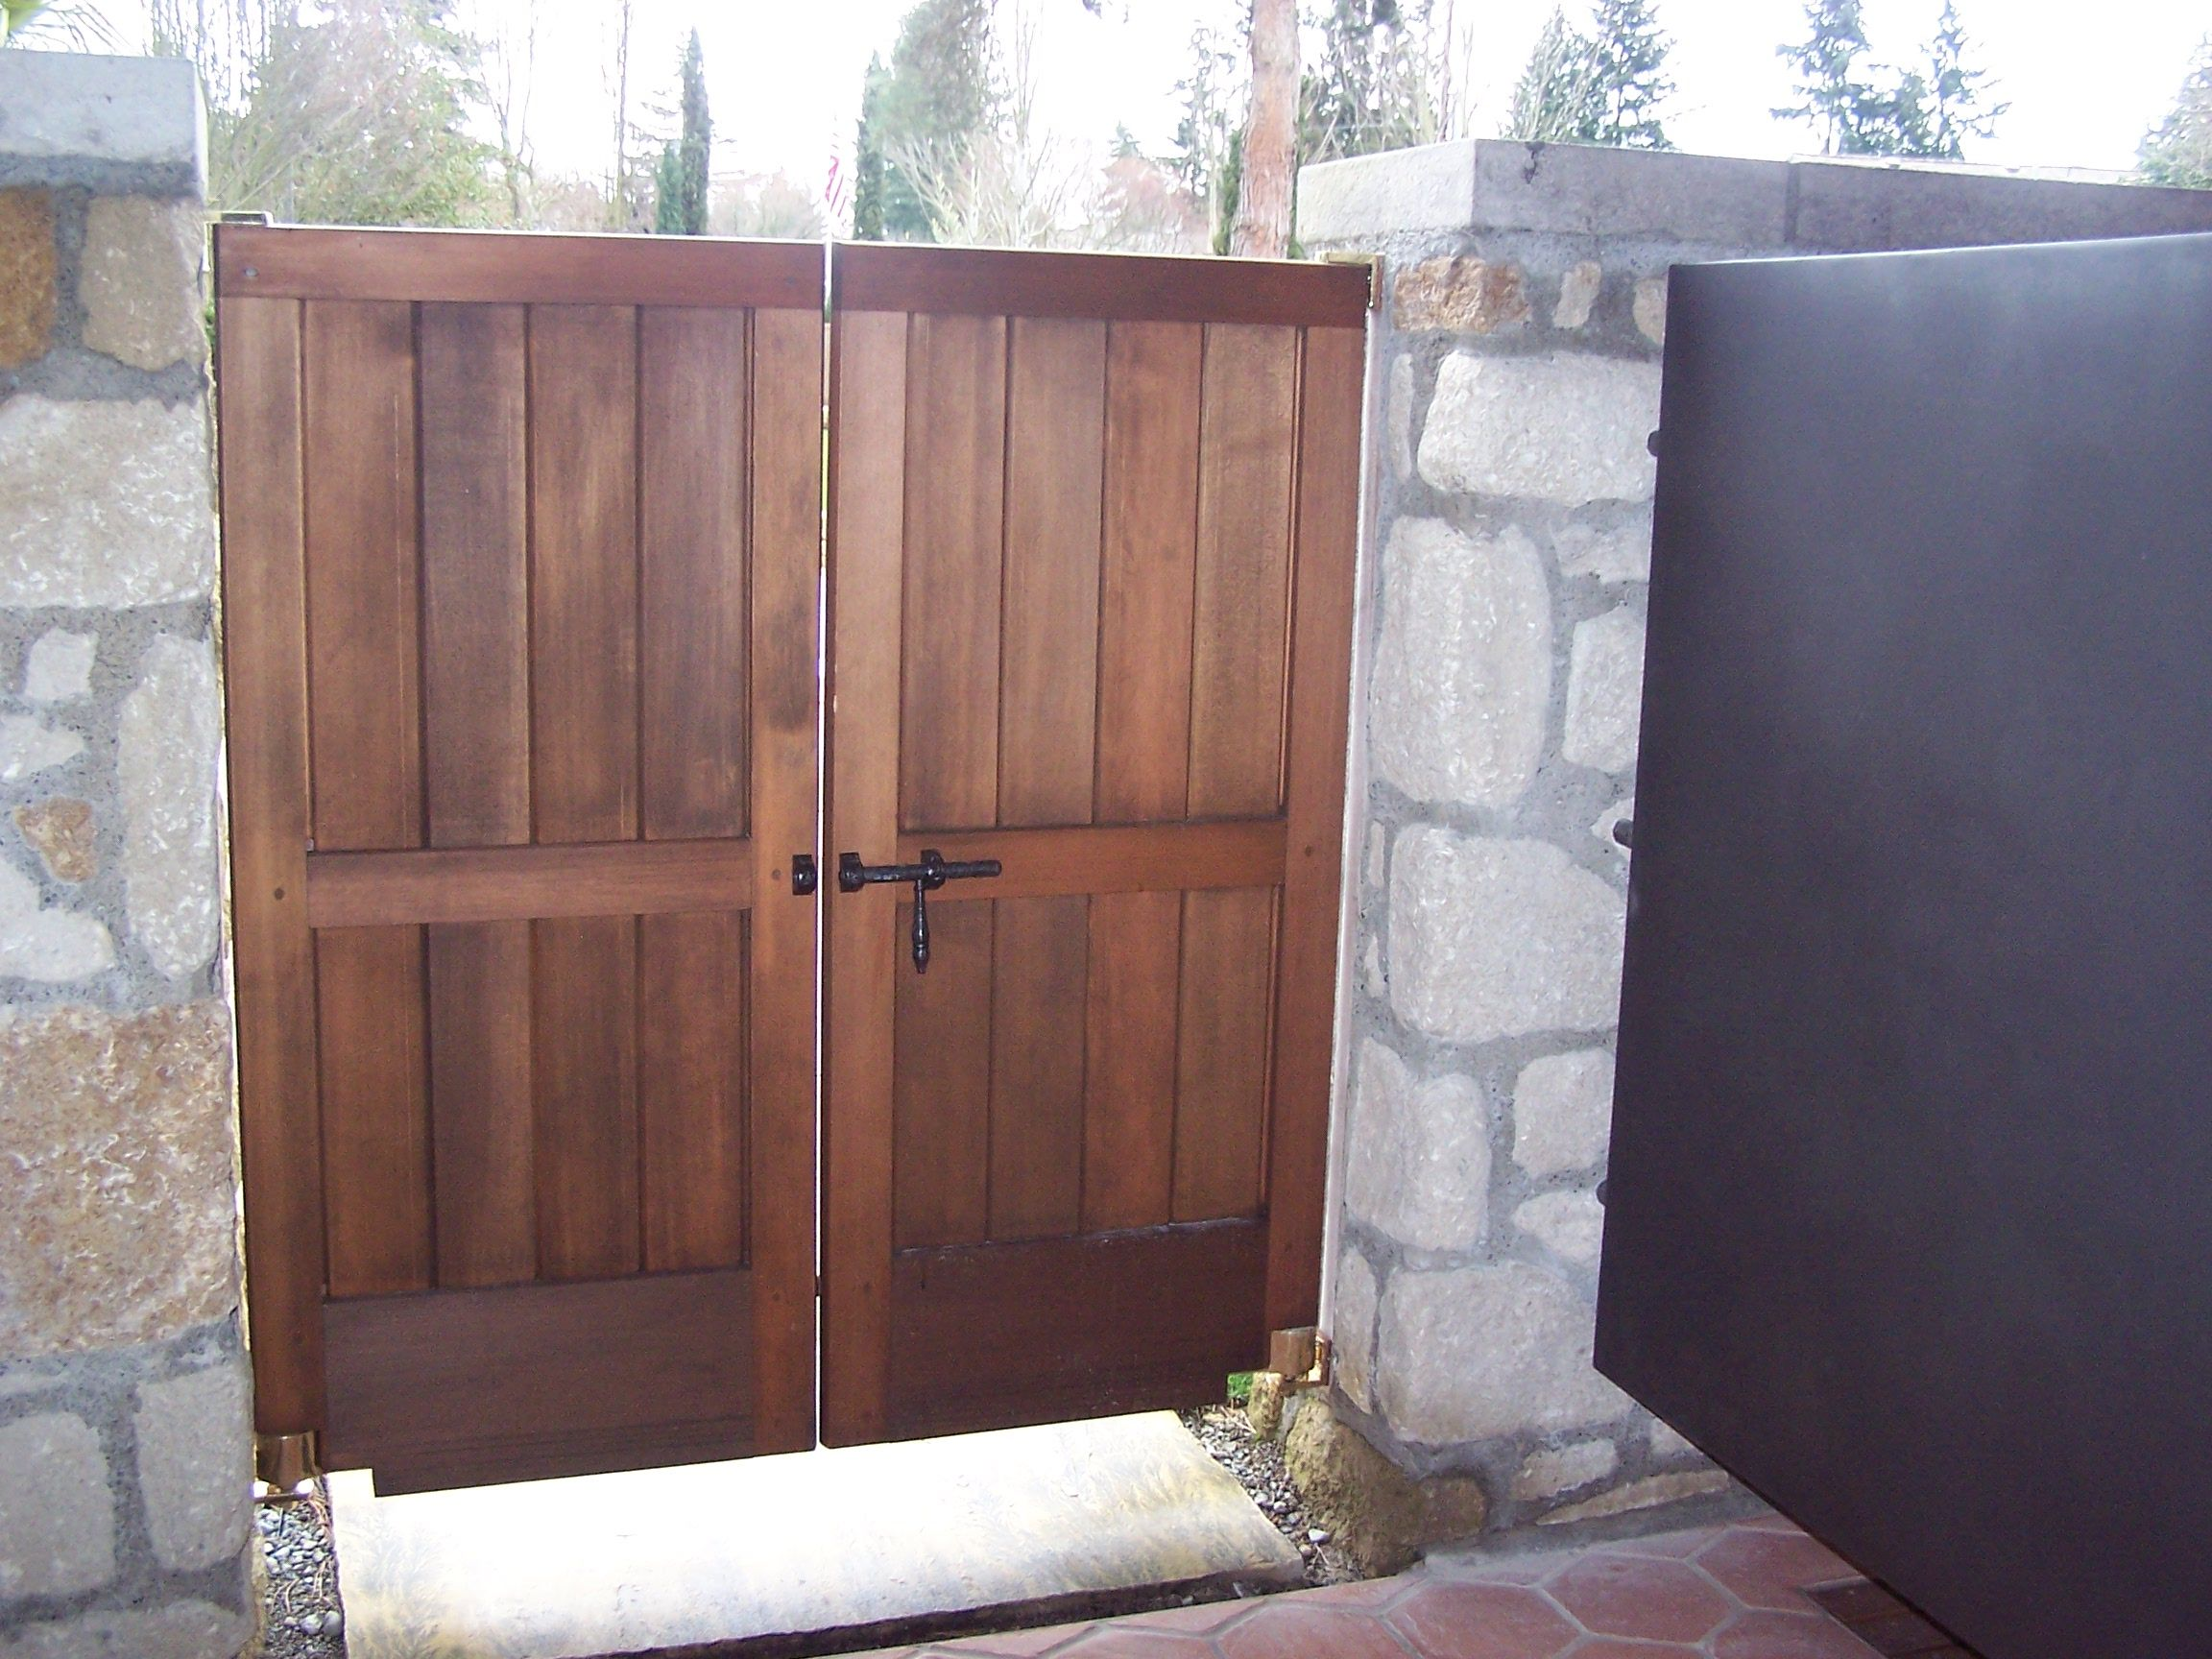 Double Gate Latches and Gate Latches for Double Gates | Yard Ideas